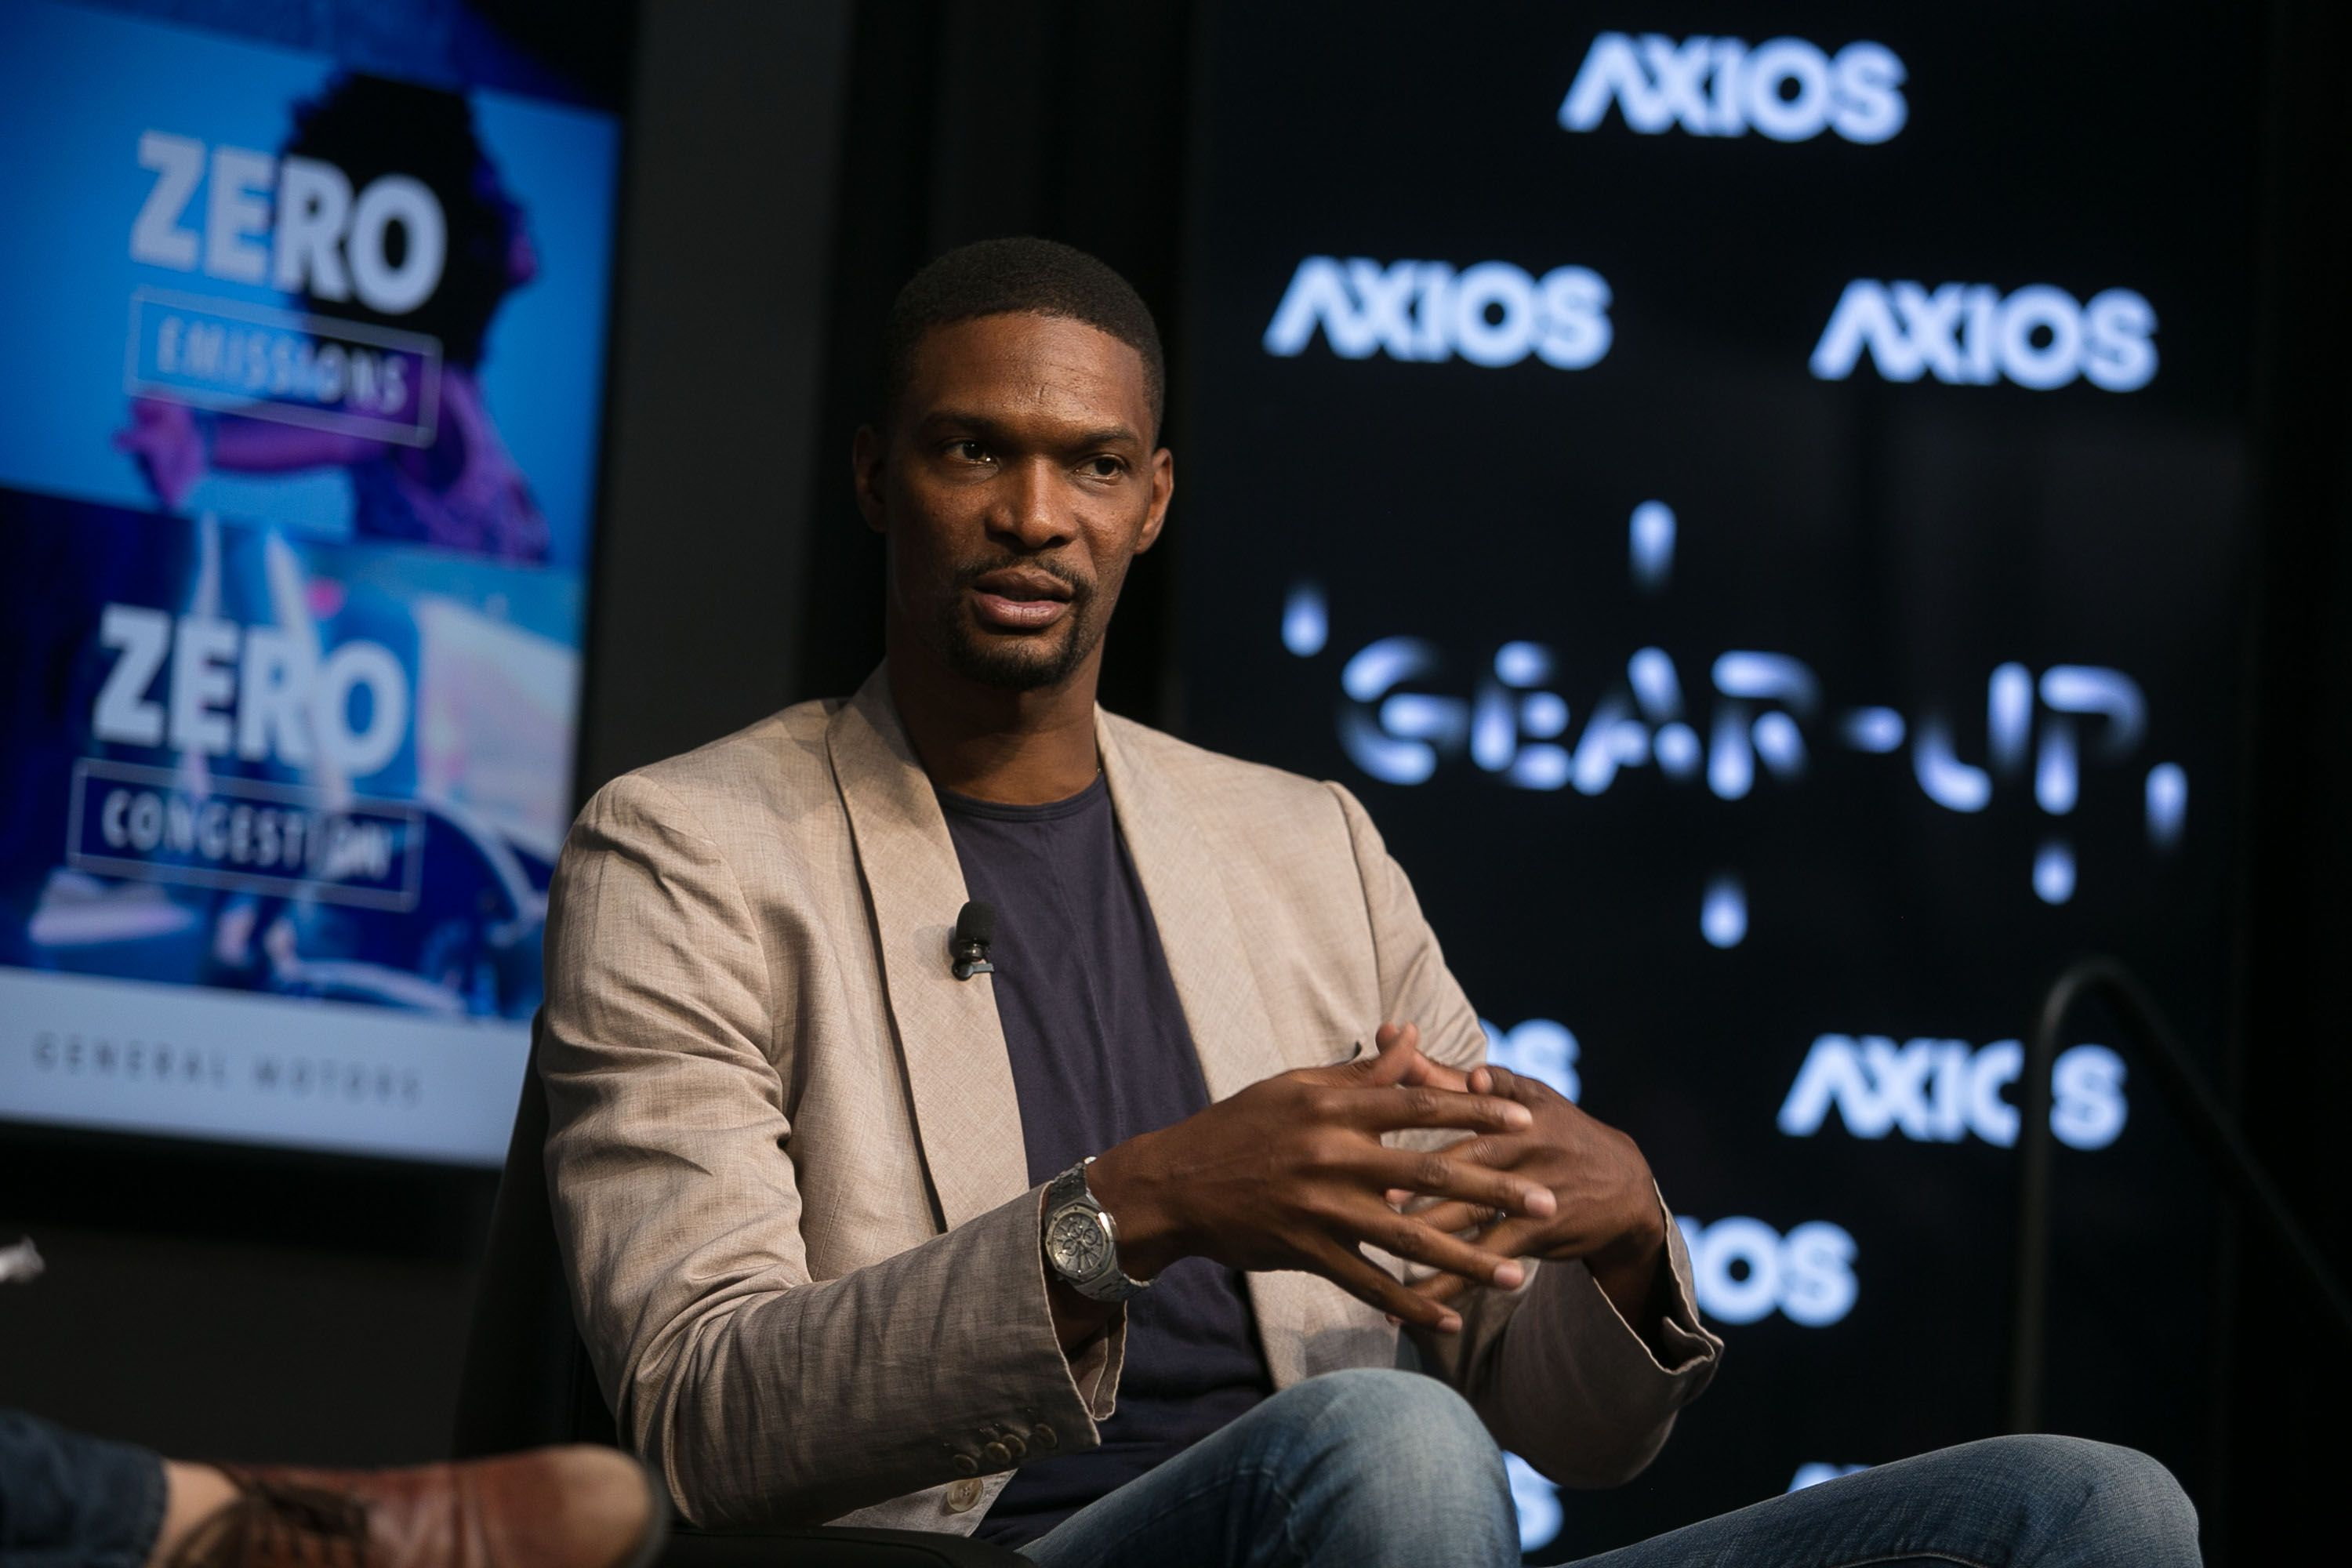 Chris Bosh explaining his passion for tech and innovation in an on-stage interview.